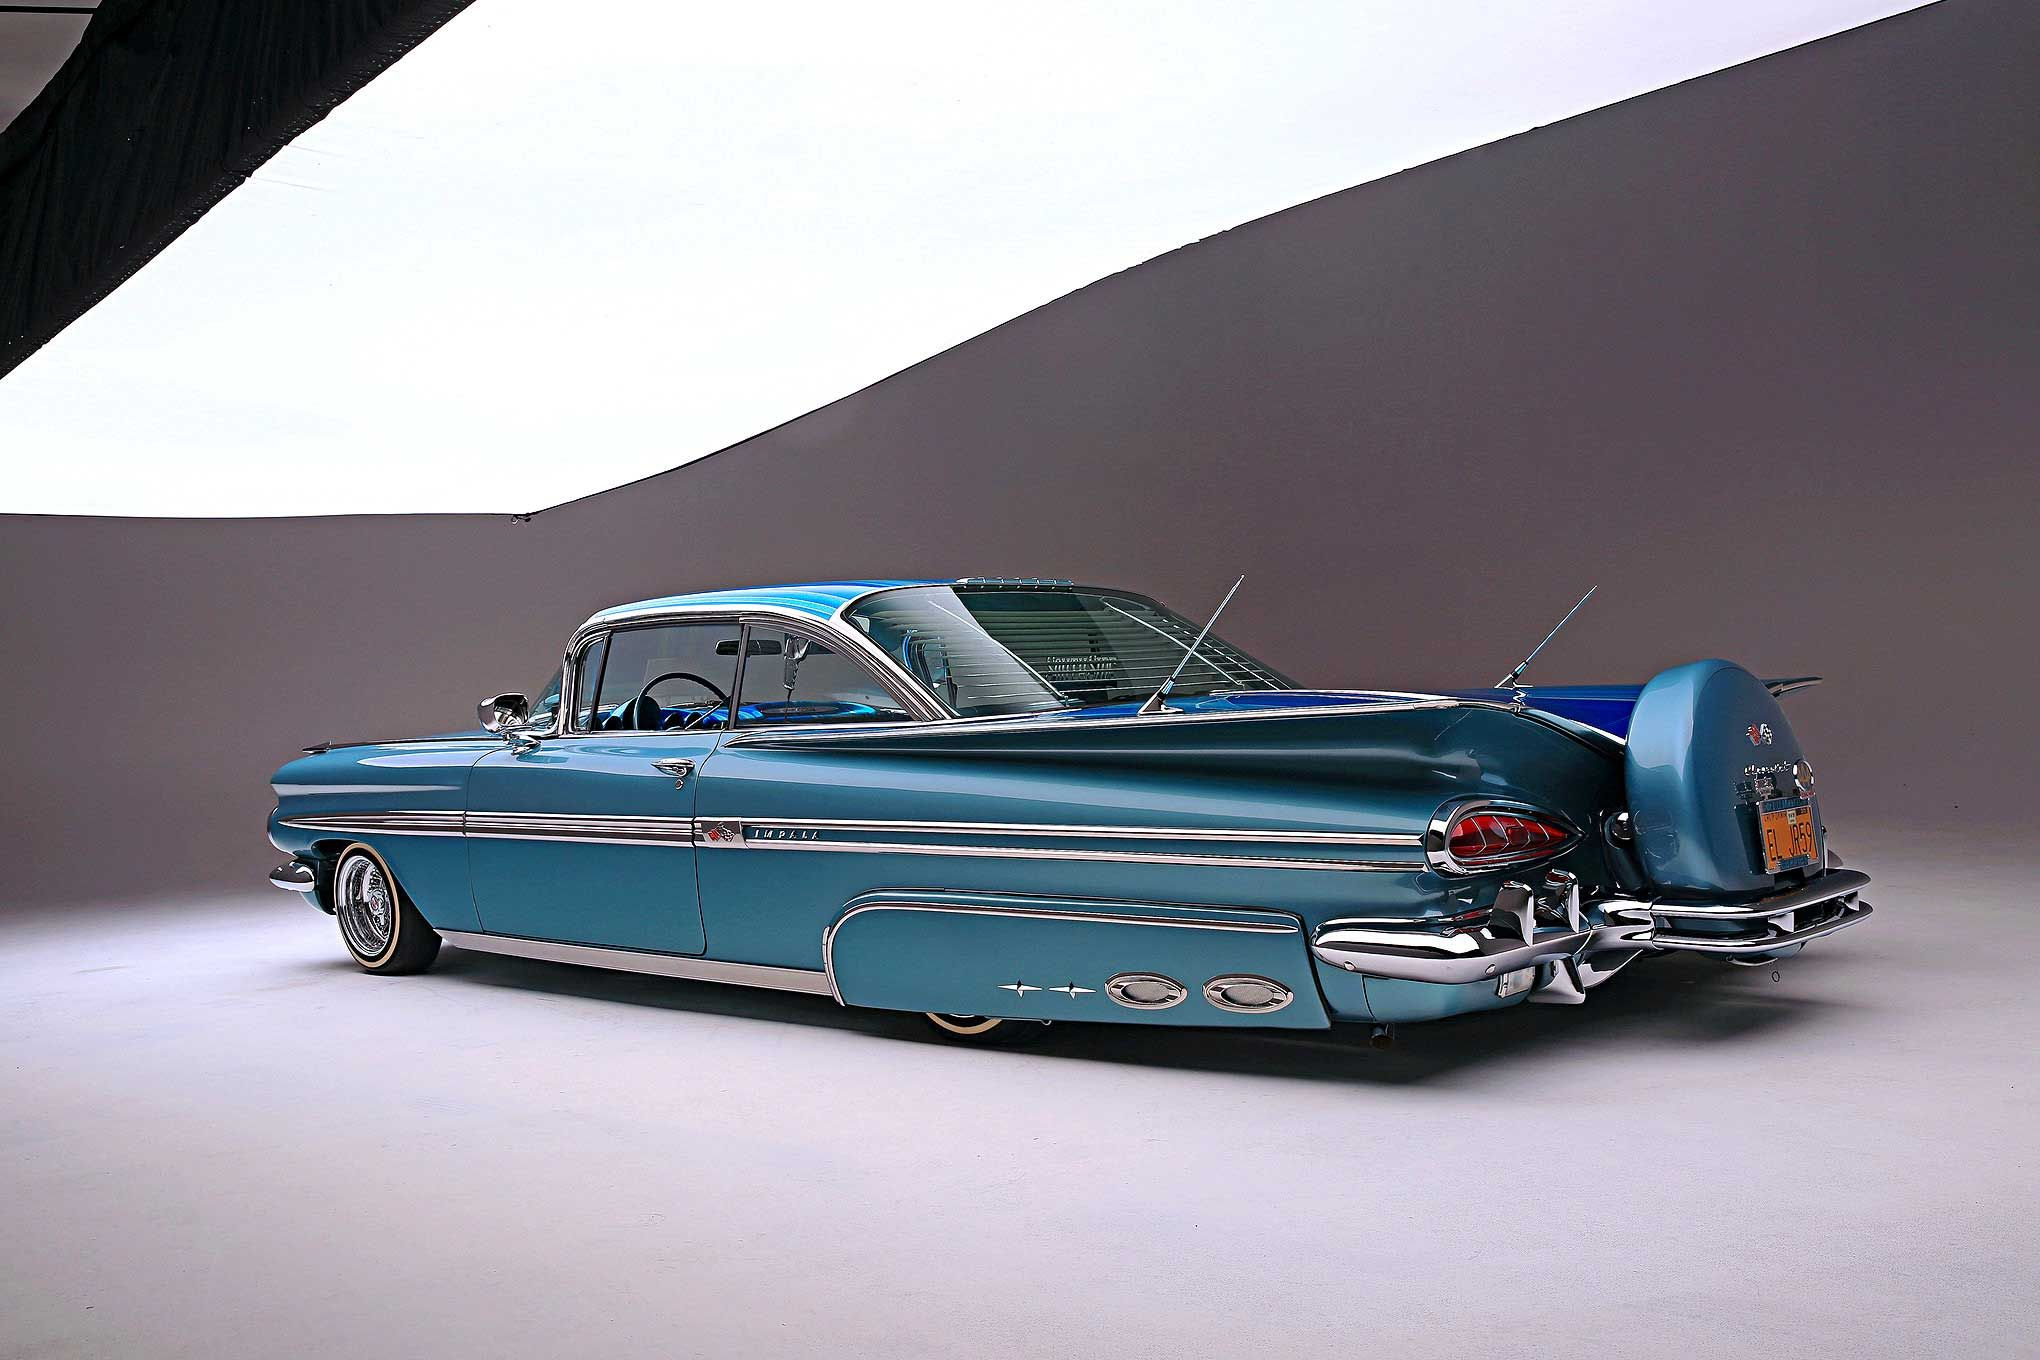 1959 Chevrolet Impala Built In Tijuana In 2020 With Images